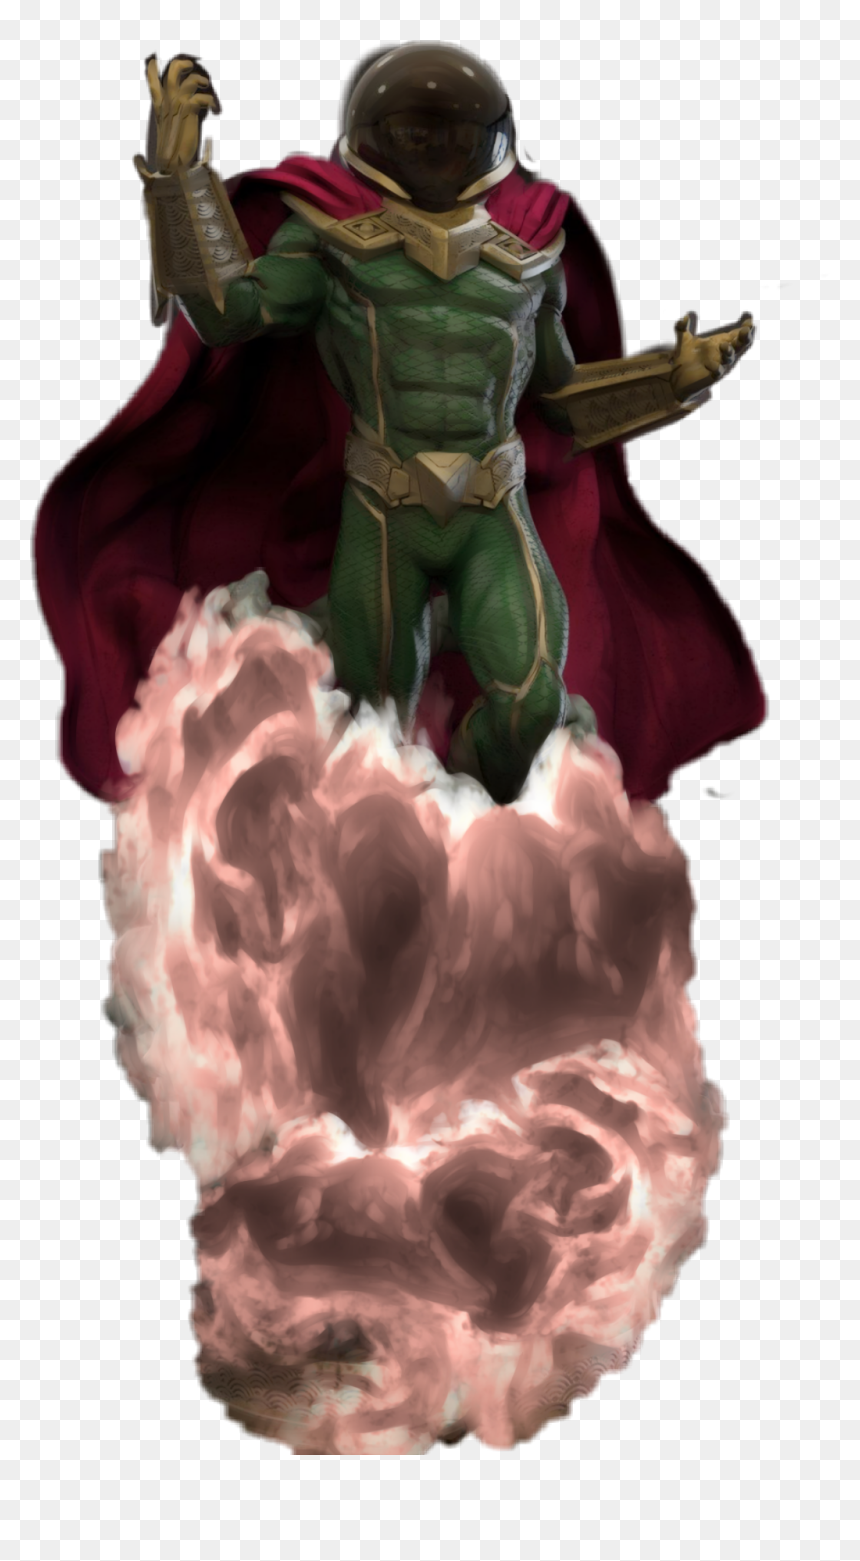 Transparent Spiderman Png Images - Mysterio Spiderman Png, Png Download